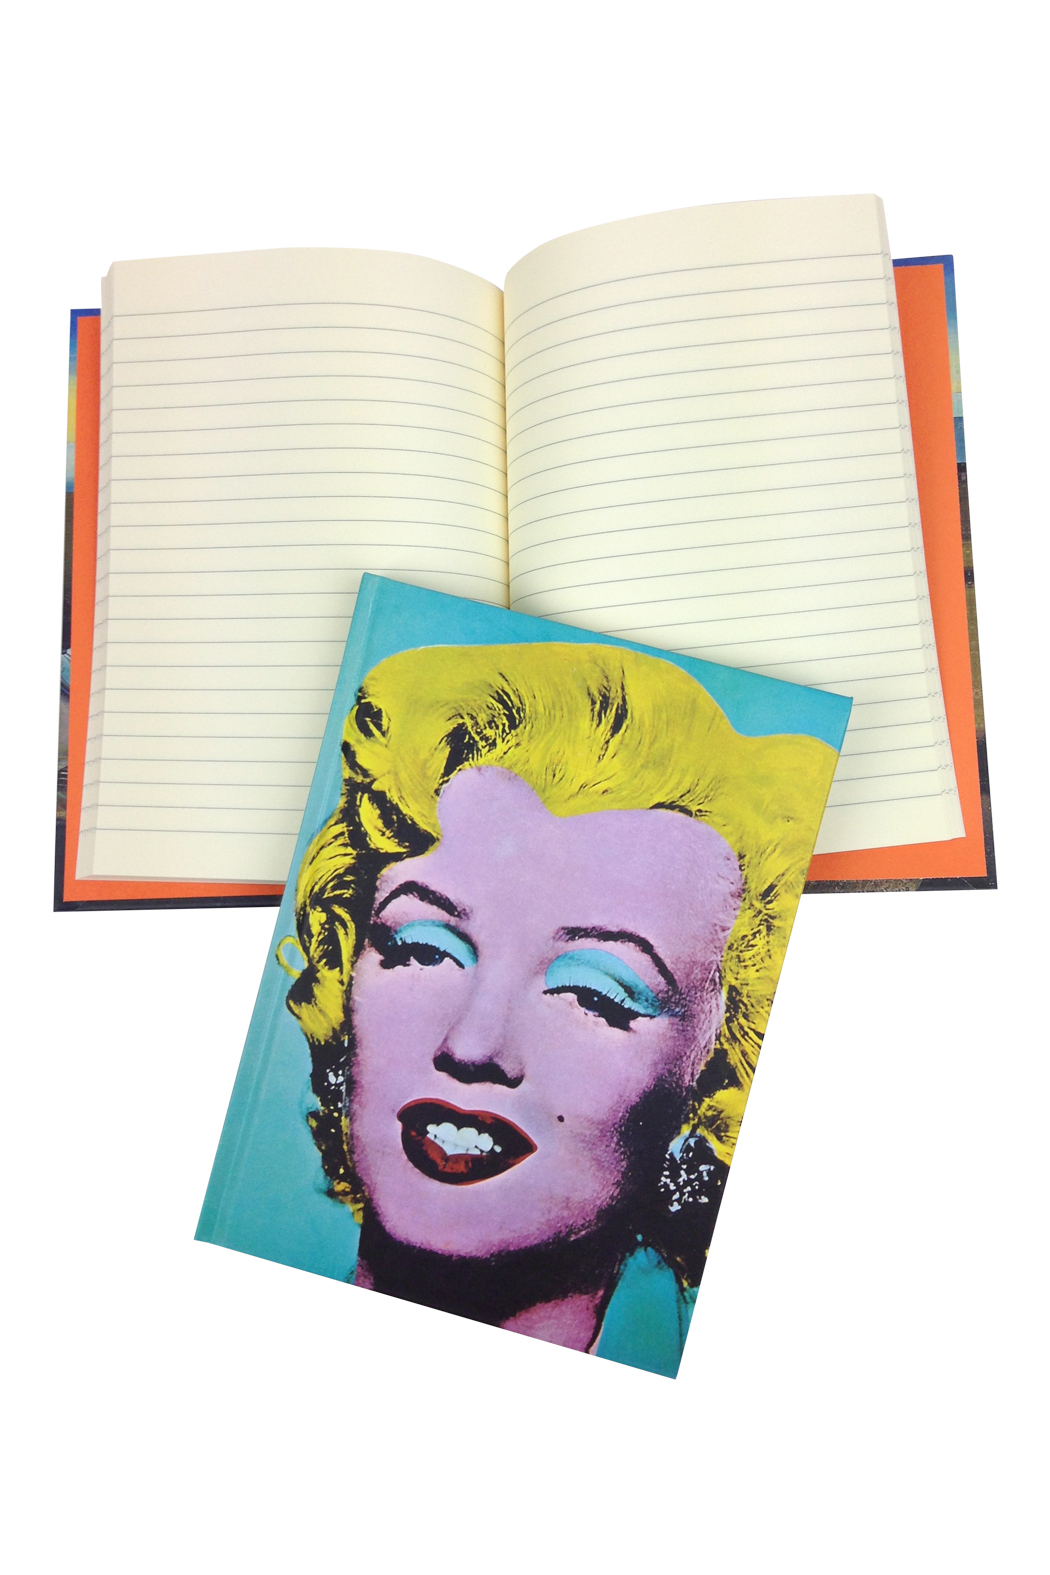 gh63 Warhols Monroe journal 1